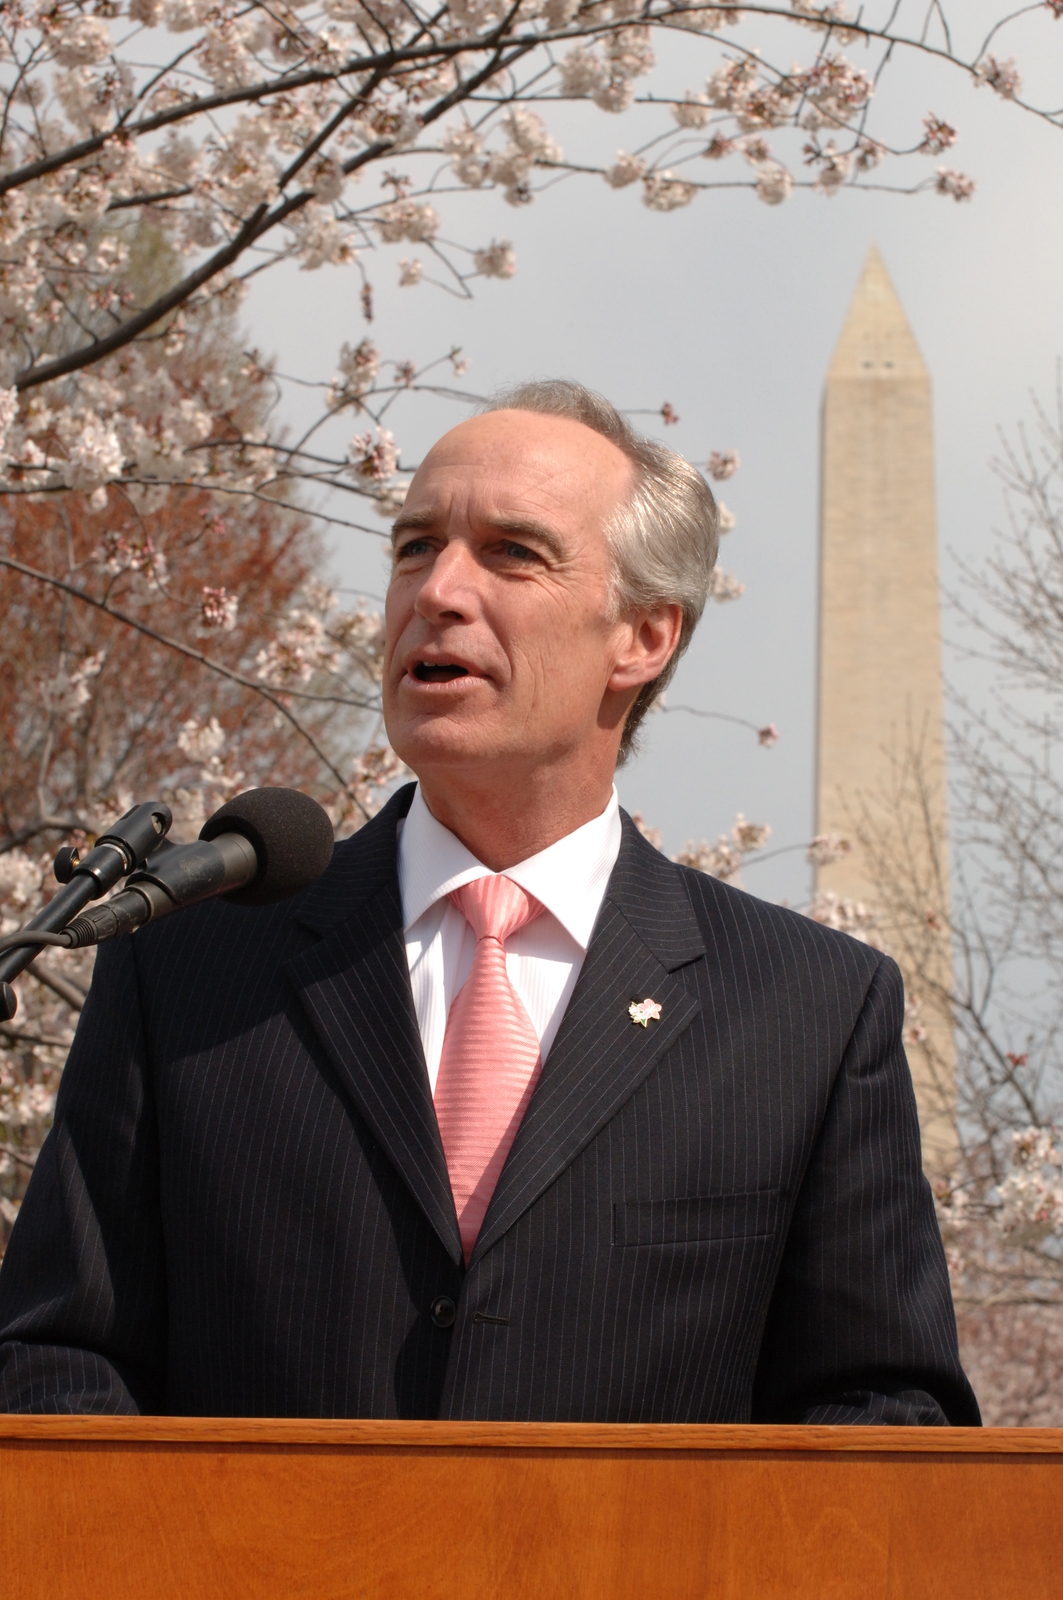 [Assignment: 48-DPA-03-28-08_SOI_K_NPS_Cherry] Visit of Secretary Dirk Kempthorne to Washington, D.C.'s Tidal Basin [and surrounding area, where he joined National Park Service Director Mary Bomar, National Mall and Memorial Parks Superintendent Peggy O'Dell, and National Cherry Blossom Festival, Inc. President Diana Mayhew for a] press conference [announcement of new and enhanced visitor services on the National Mall in time for the] 2008 Cherry Bloossom Festival. [The Secretary also spoke with National Park Service staff, U.S. Park Police personnel, and visitors around the Tidal Basin and National Mall.] [48-DPA-03-28-08_SOI_K_NPS_Cherry_DOI_1717.JPG]